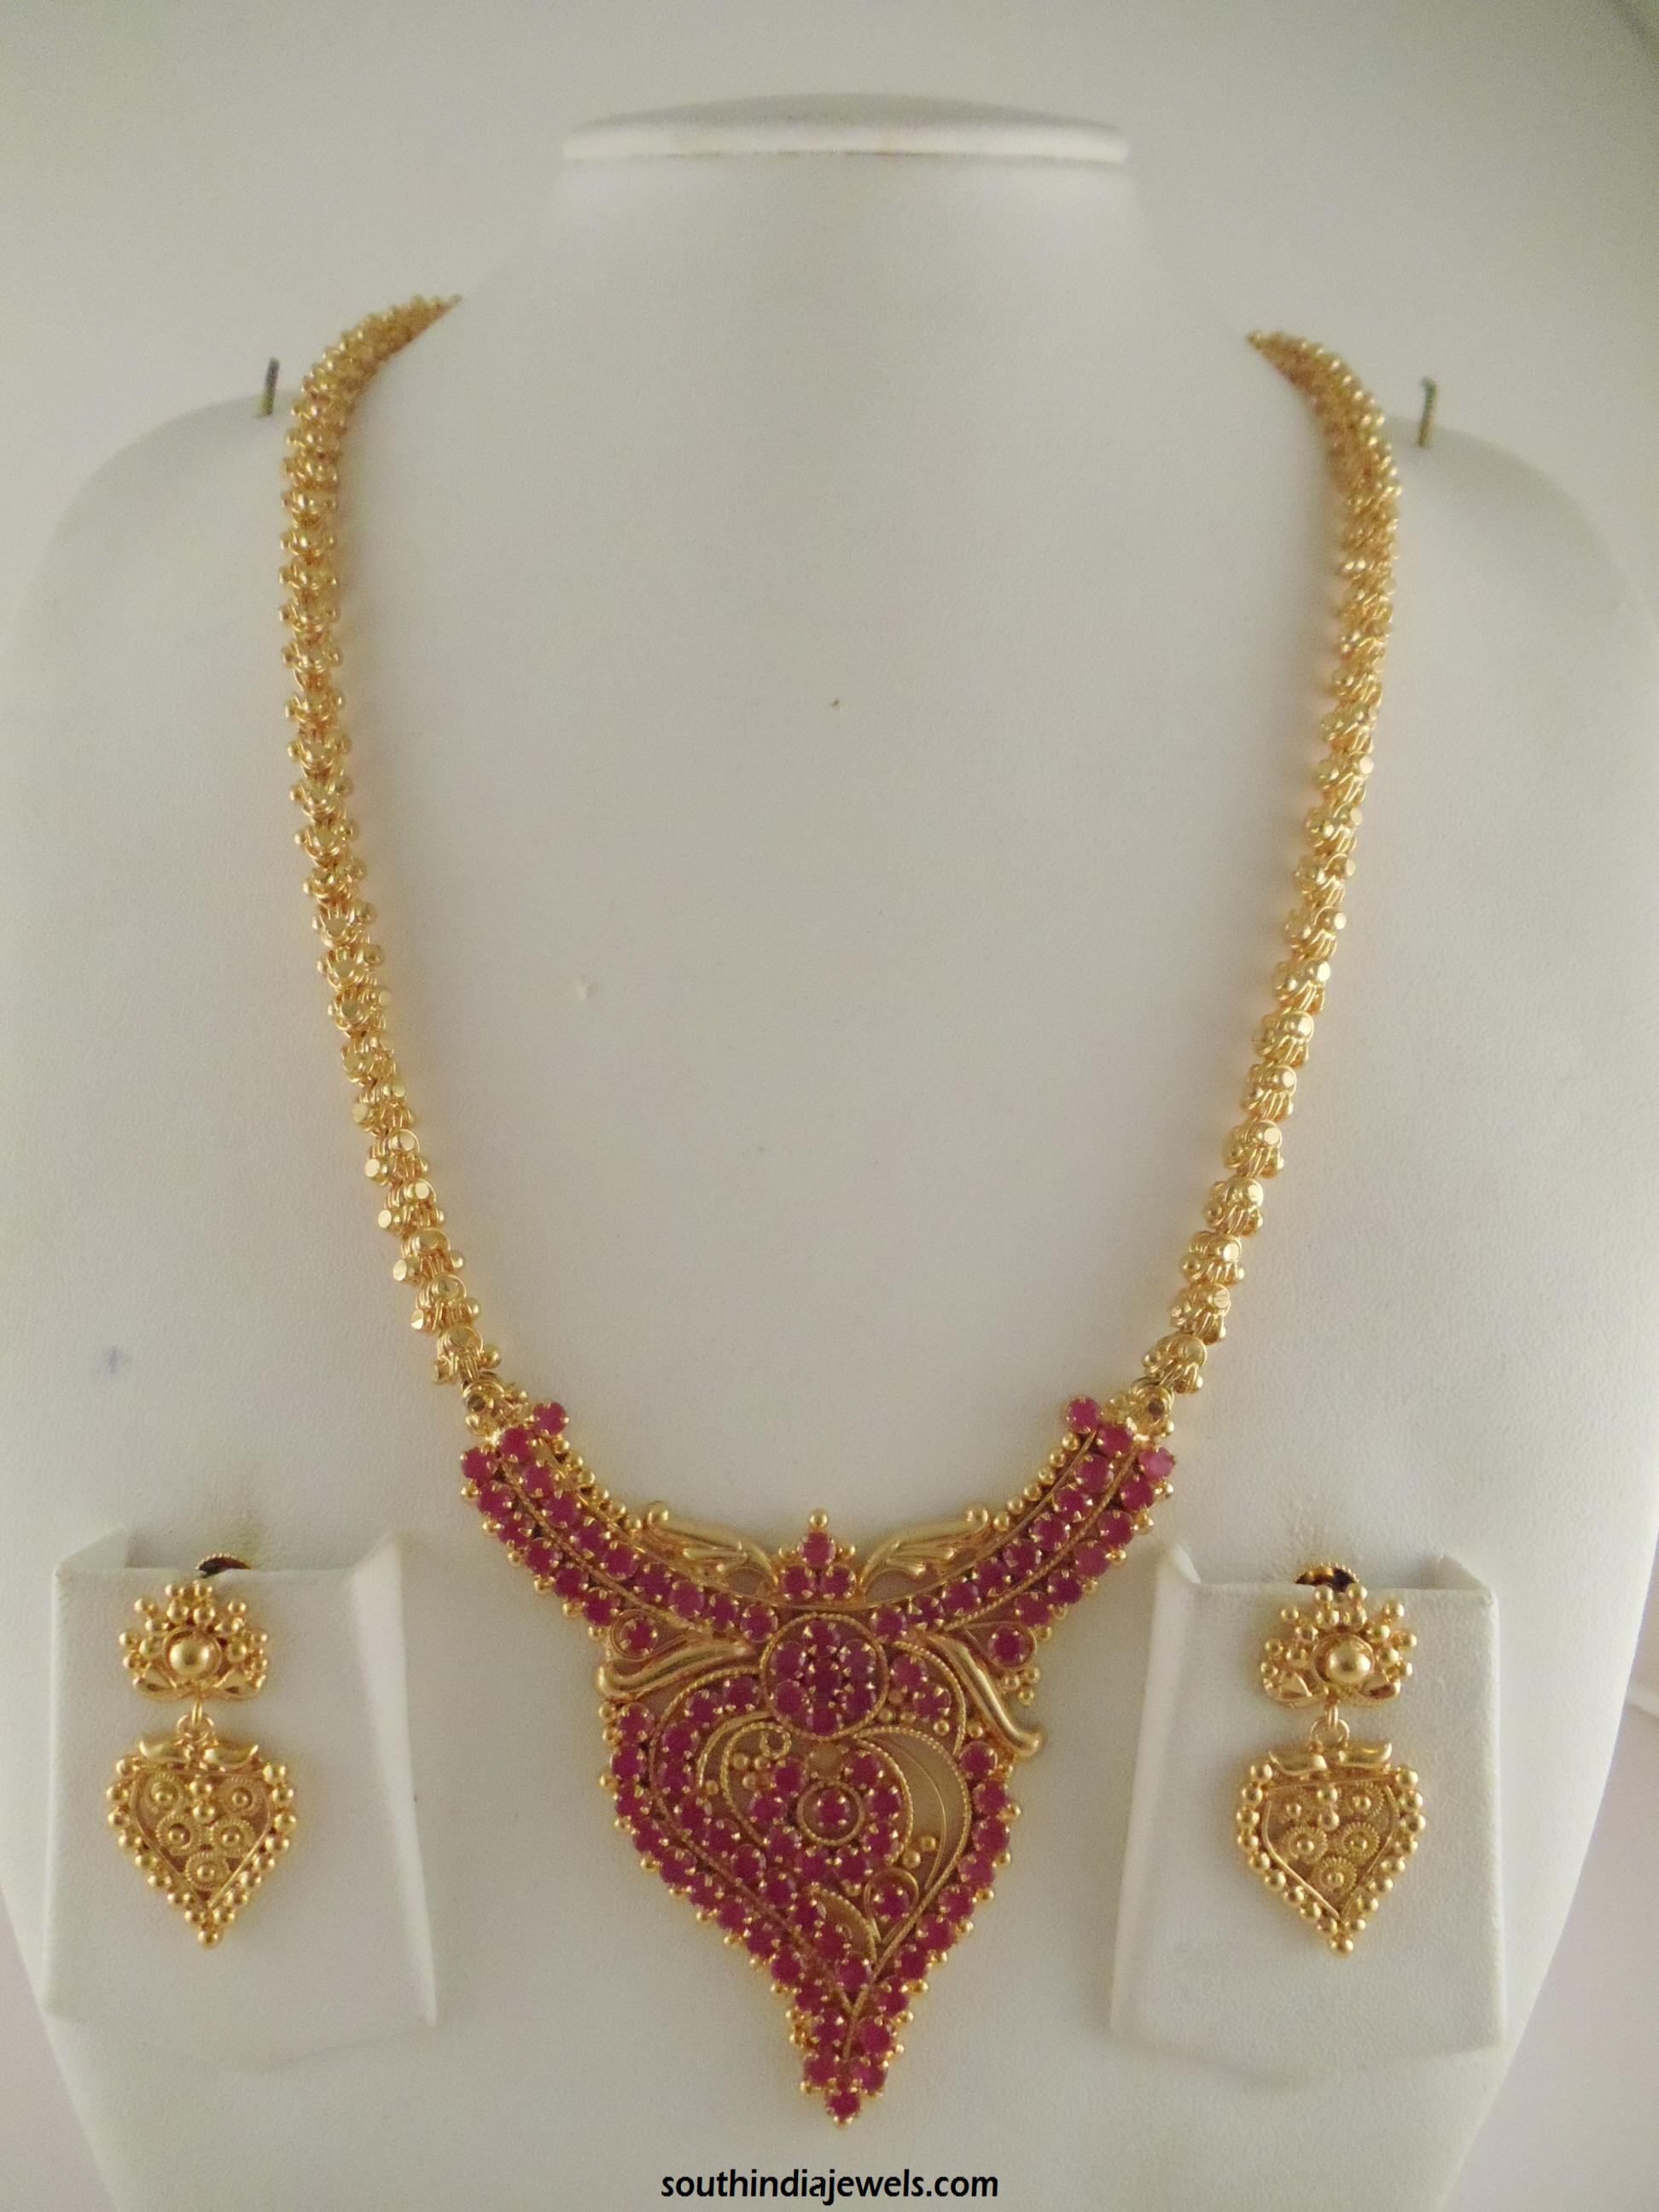 Luxury Latest Gold Necklace Designs In Indian | Jewellry\'s Website